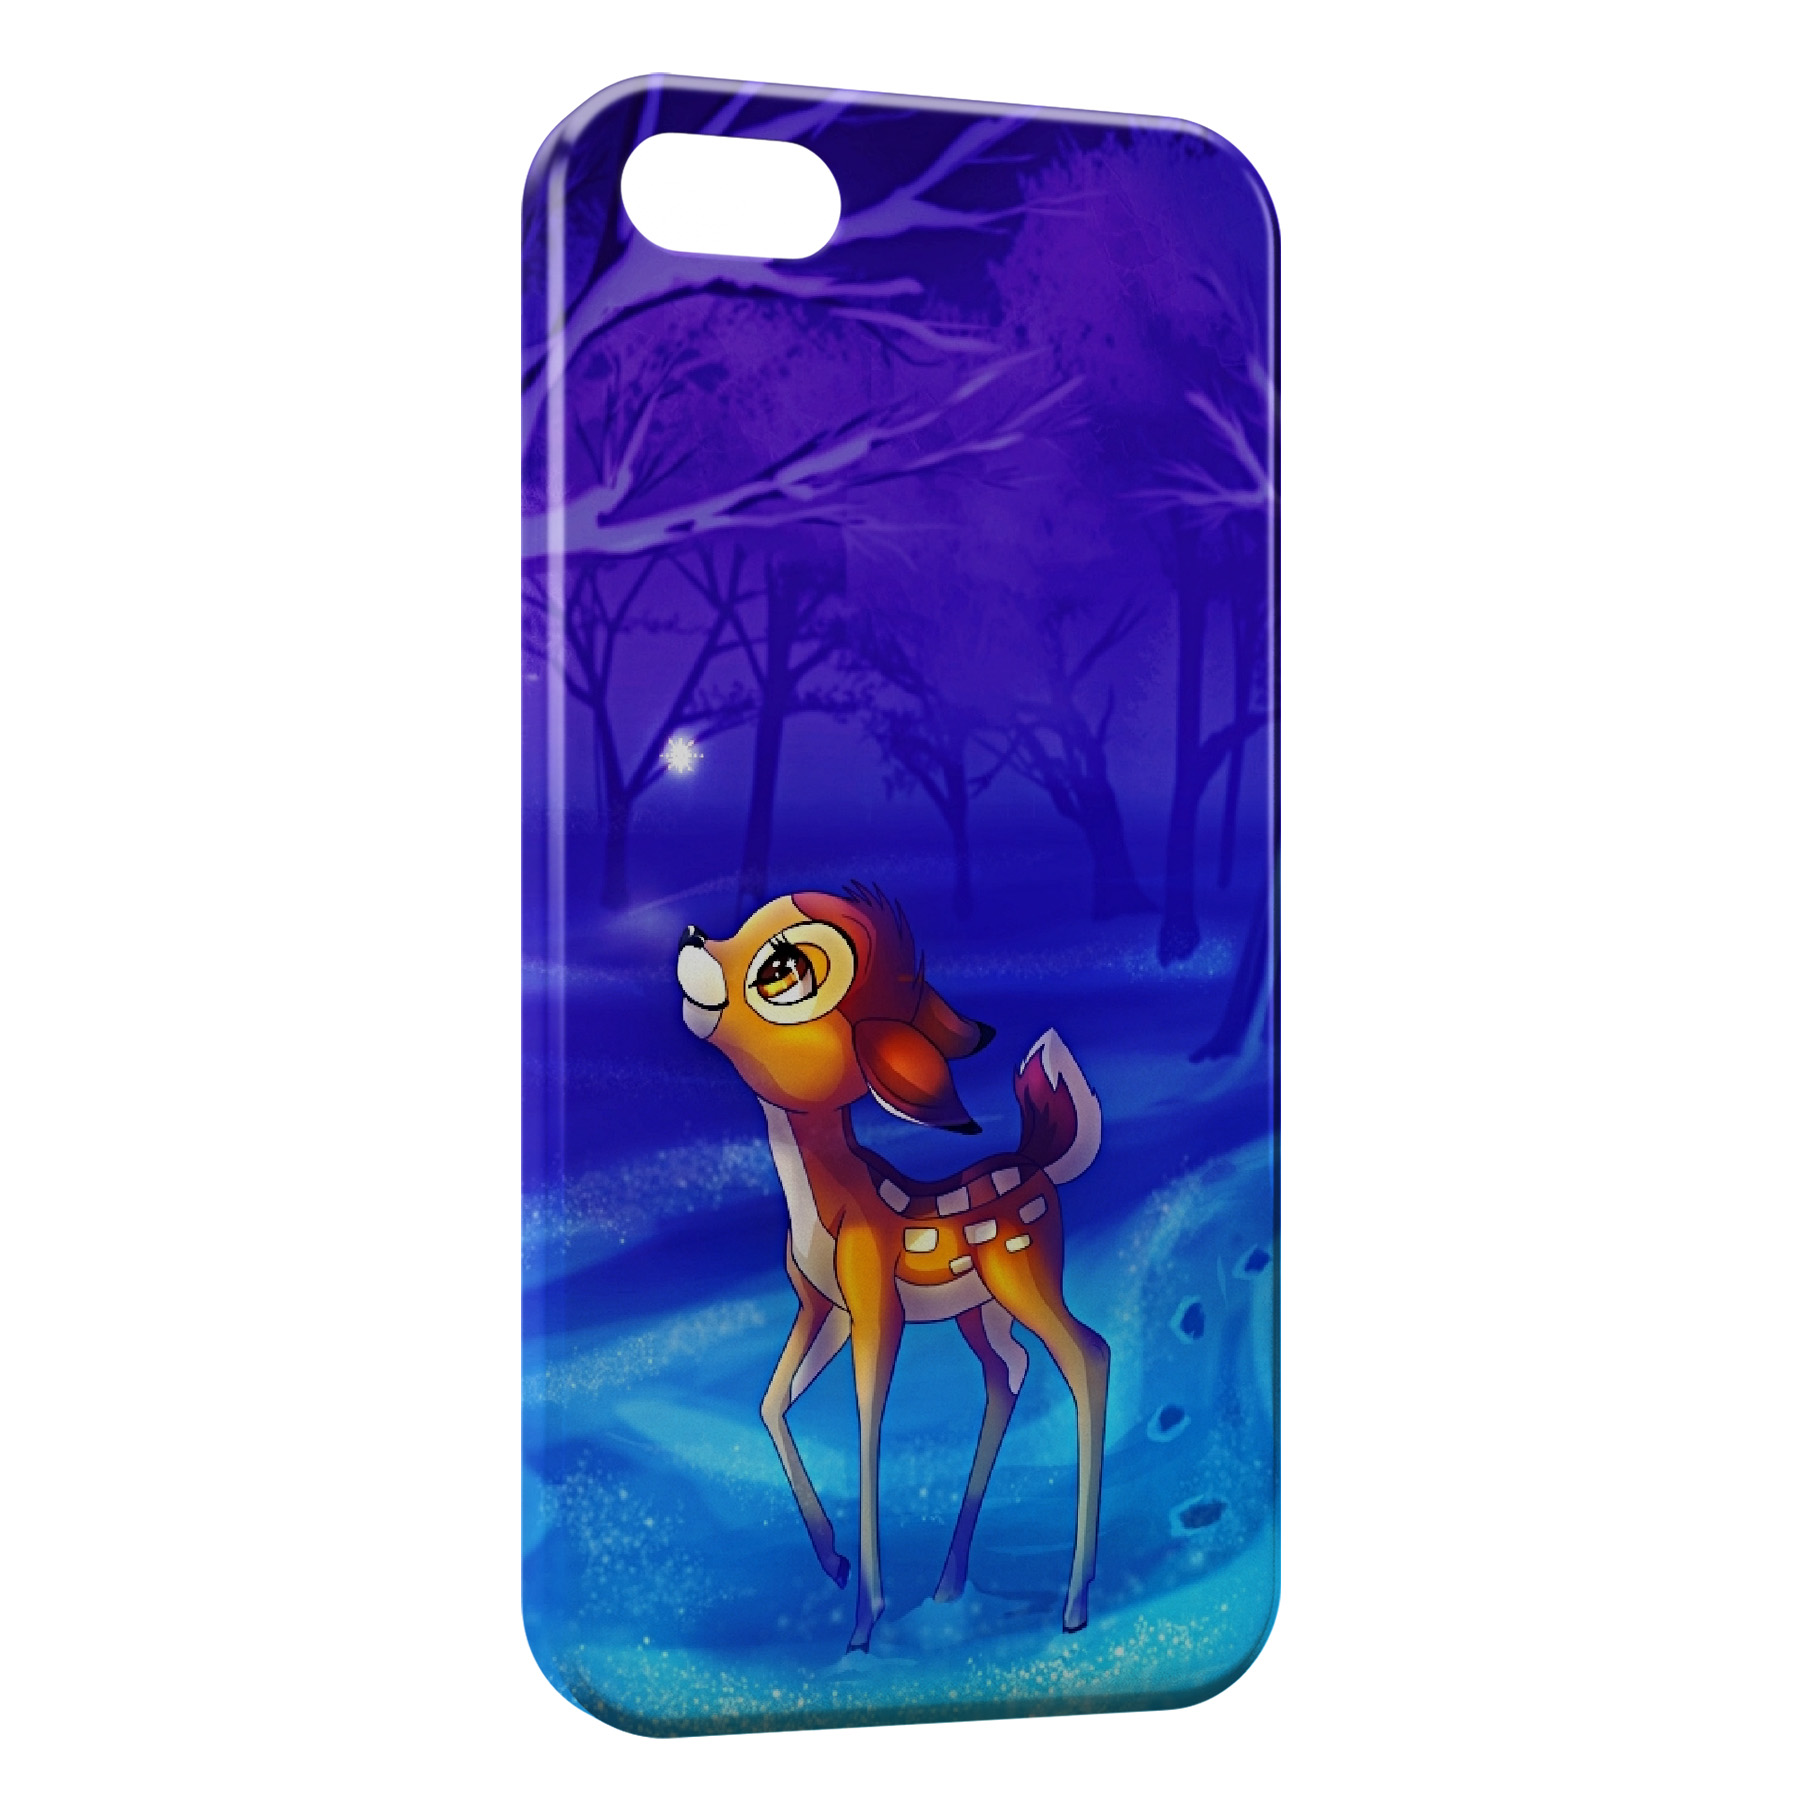 Coque iPhone 6 6S Bambi Cute